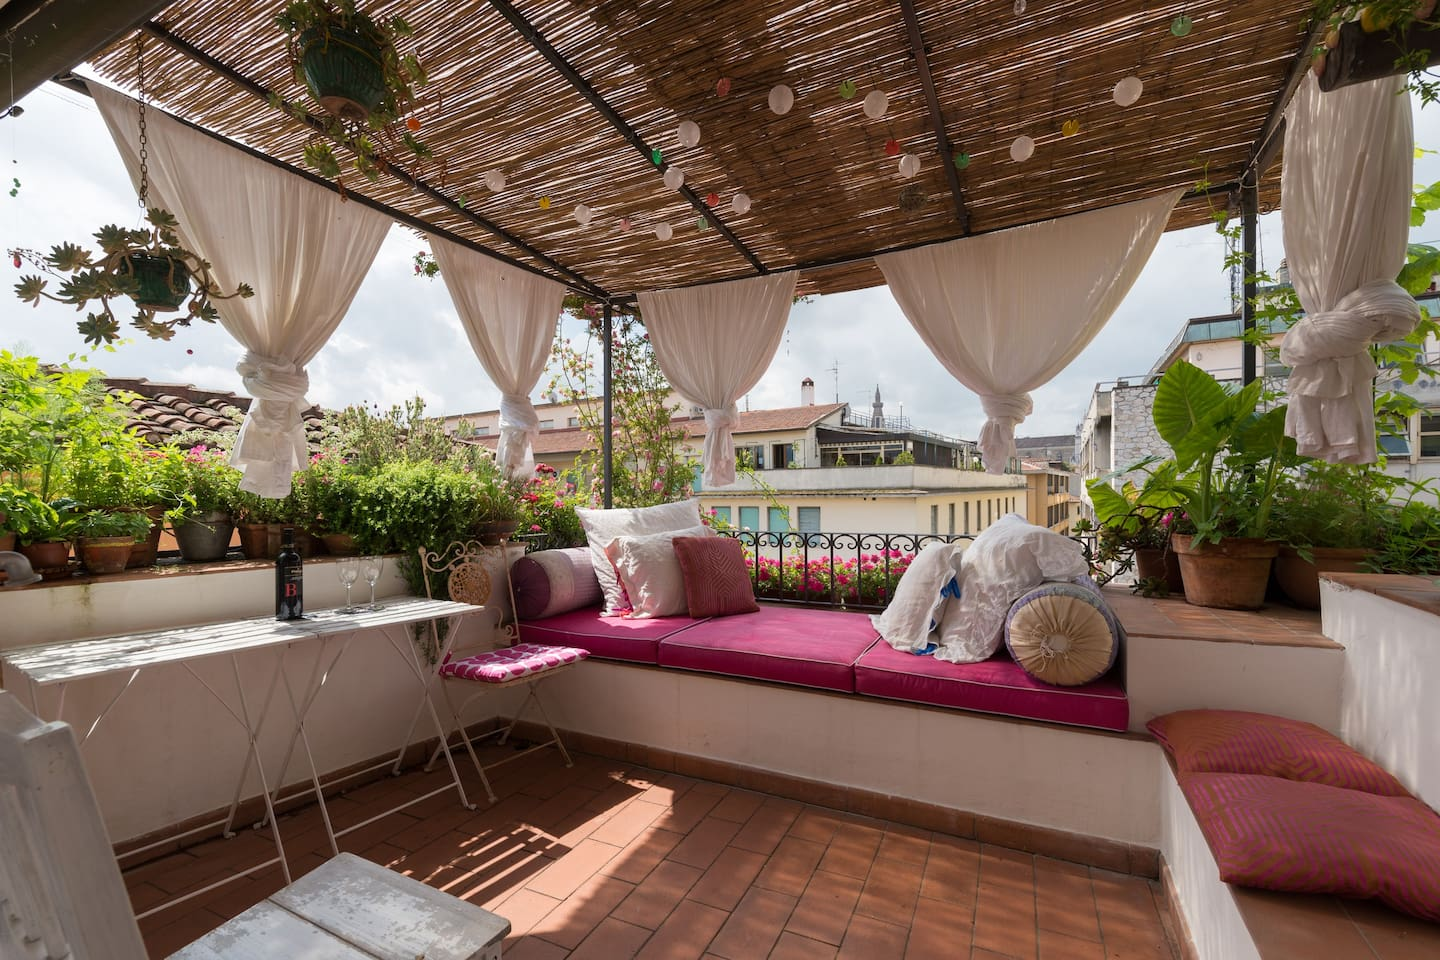 Terrazza fiorita in S. Croce - Apartments for Rent in Florence ...